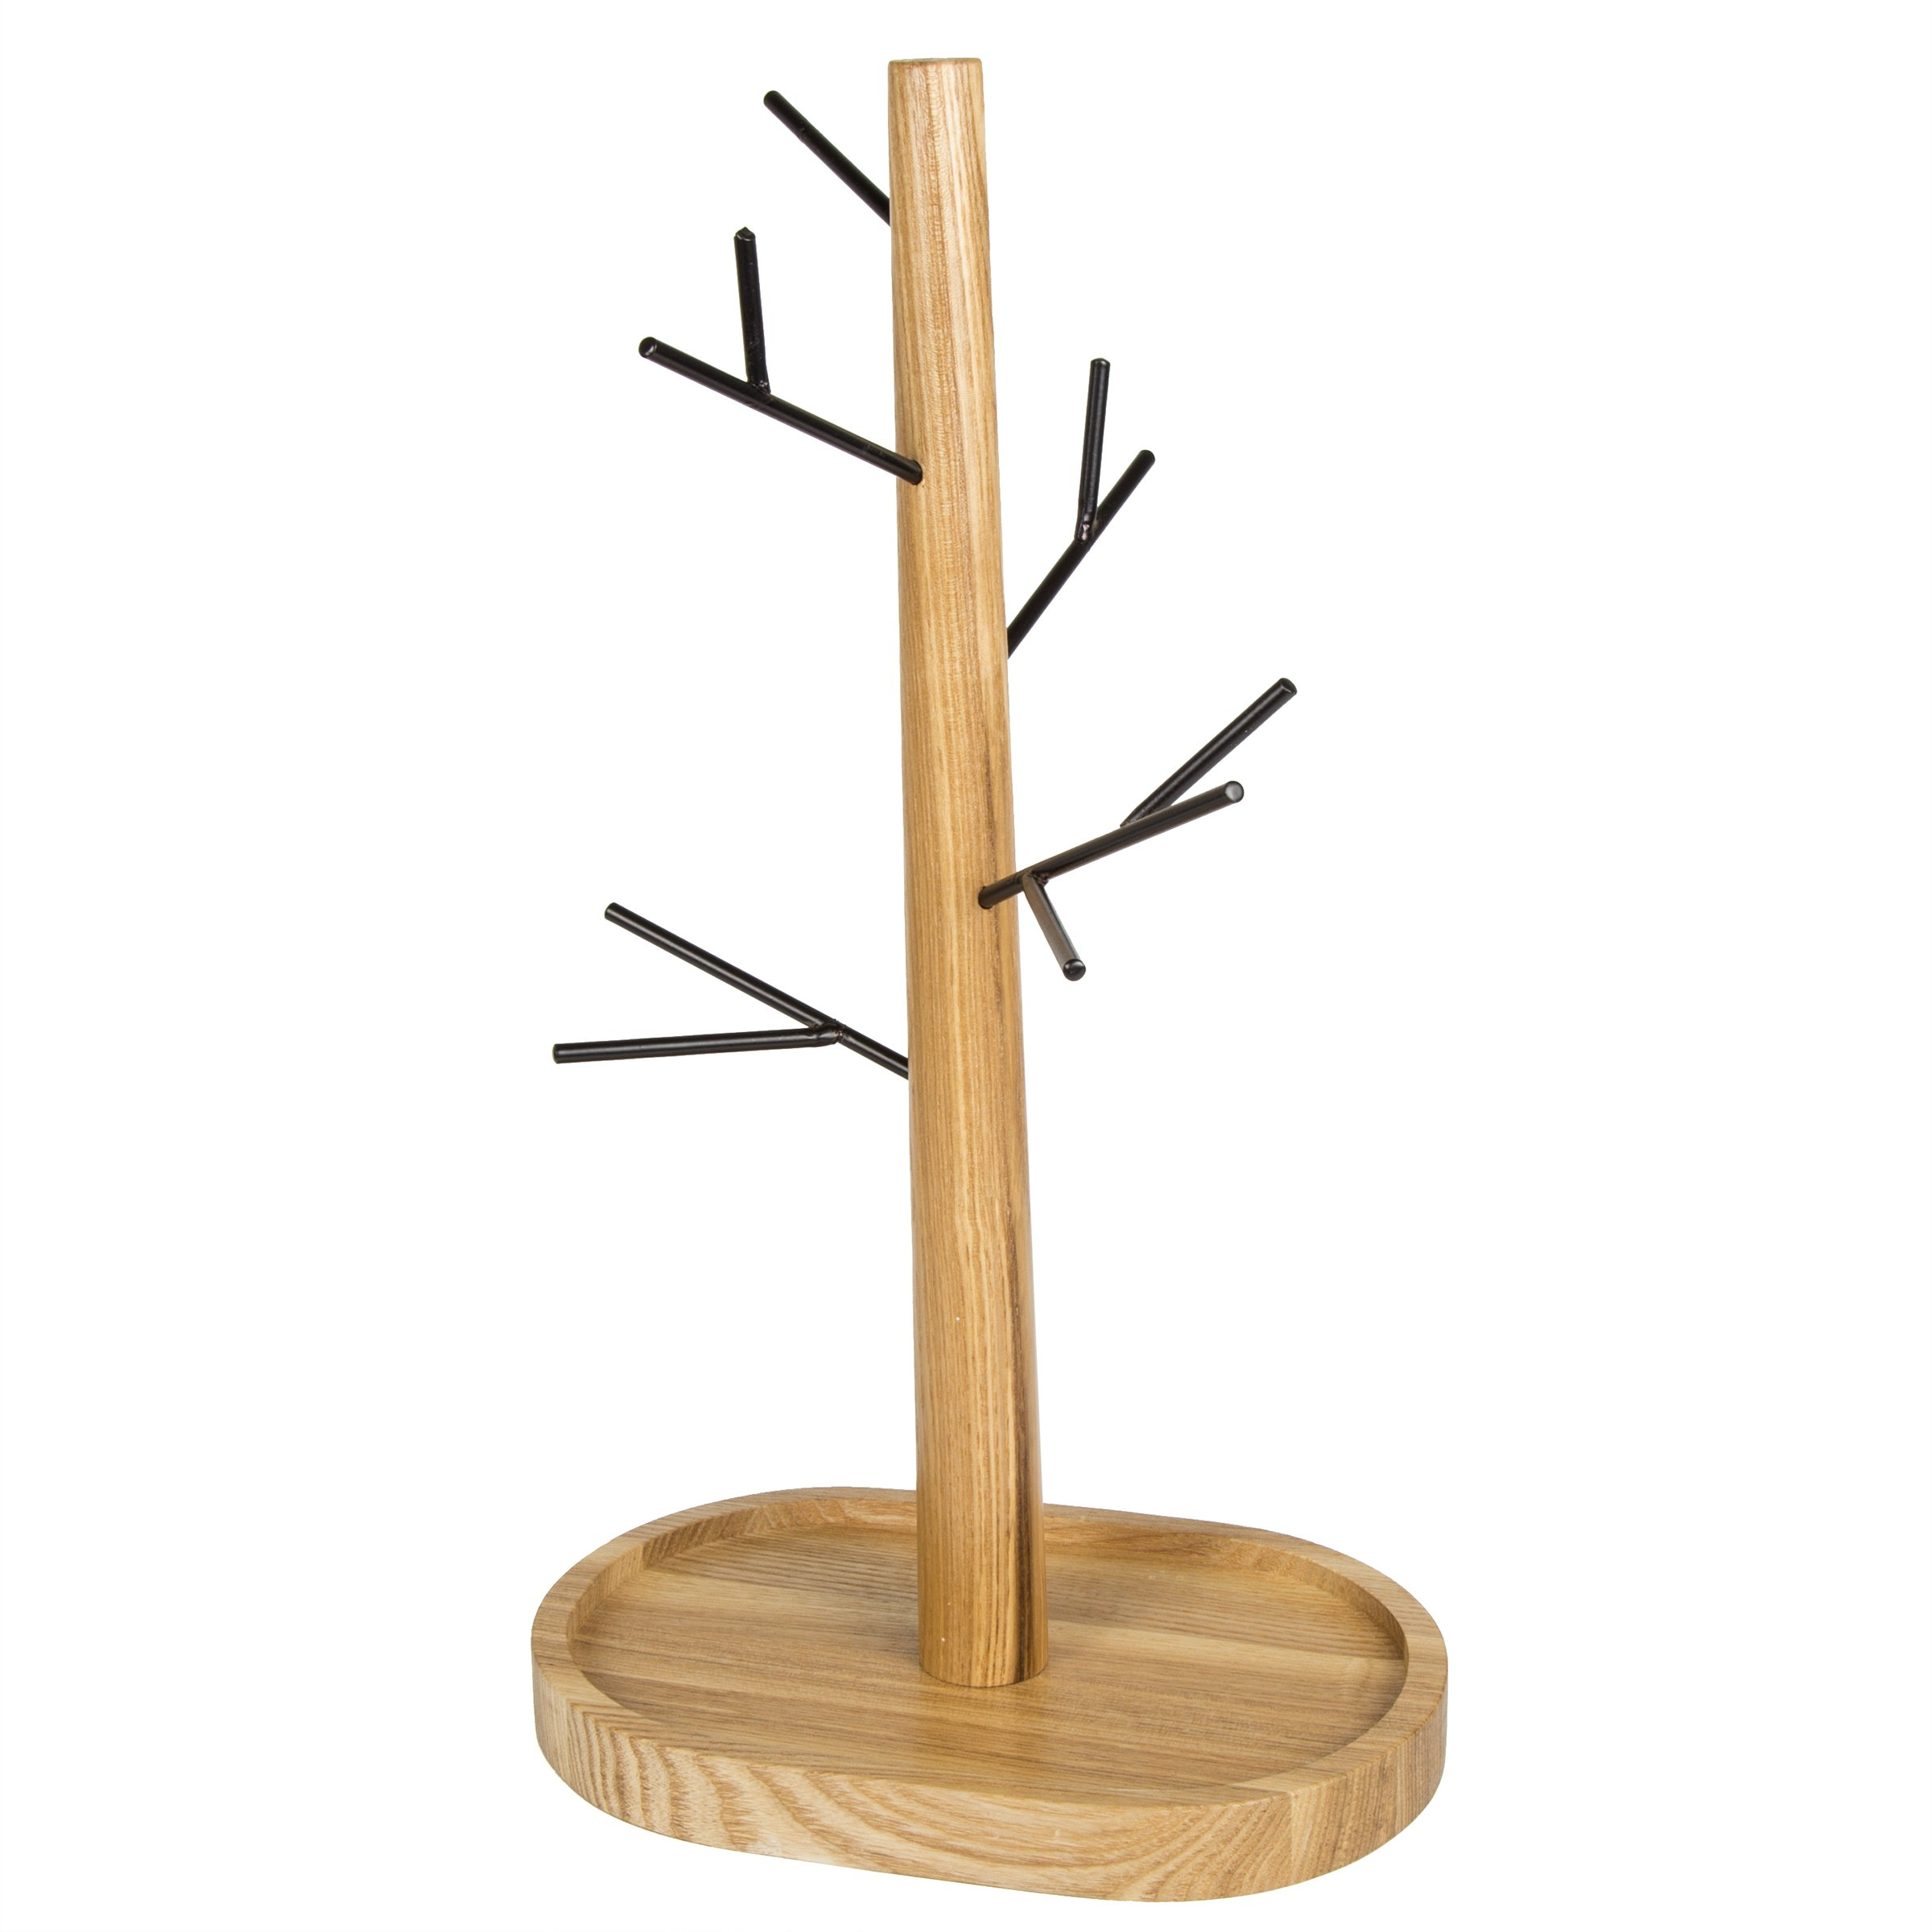 Creative Home Black Wire Jewelry Tree Stand, Hanger Organizer Painting and Acacia Wood Tray